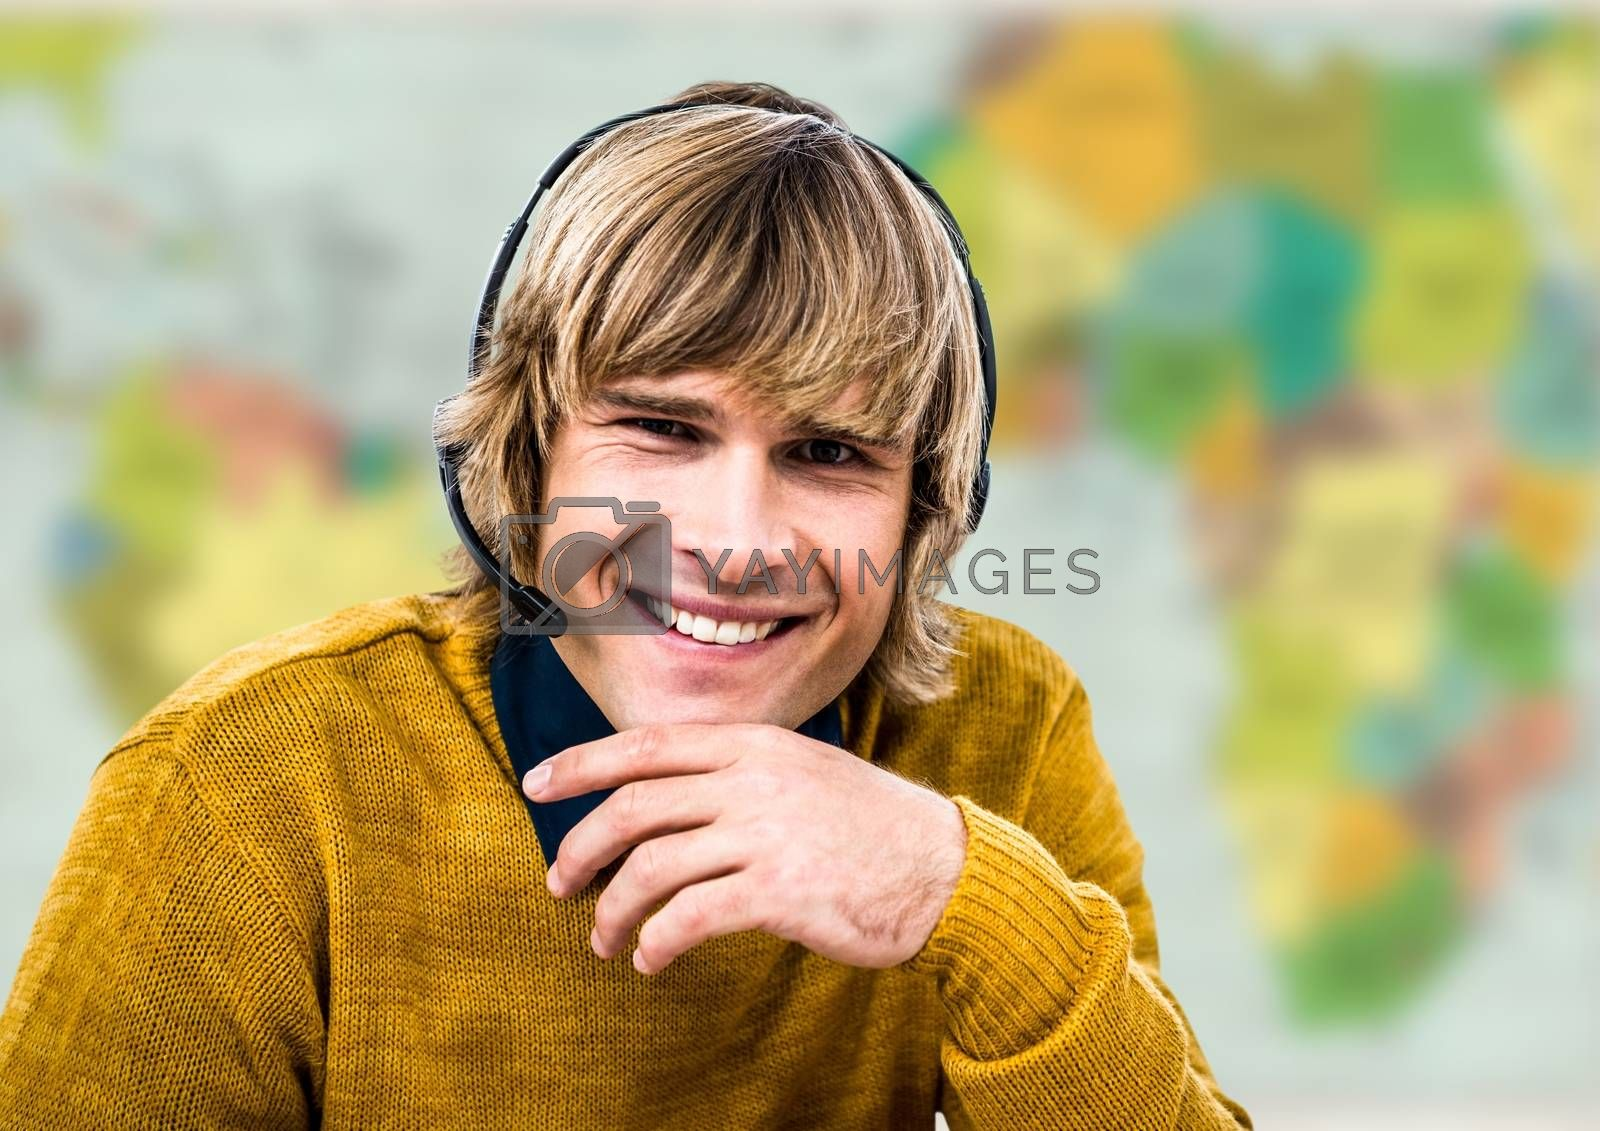 Digital composite of Travel agent in headset against blurry map